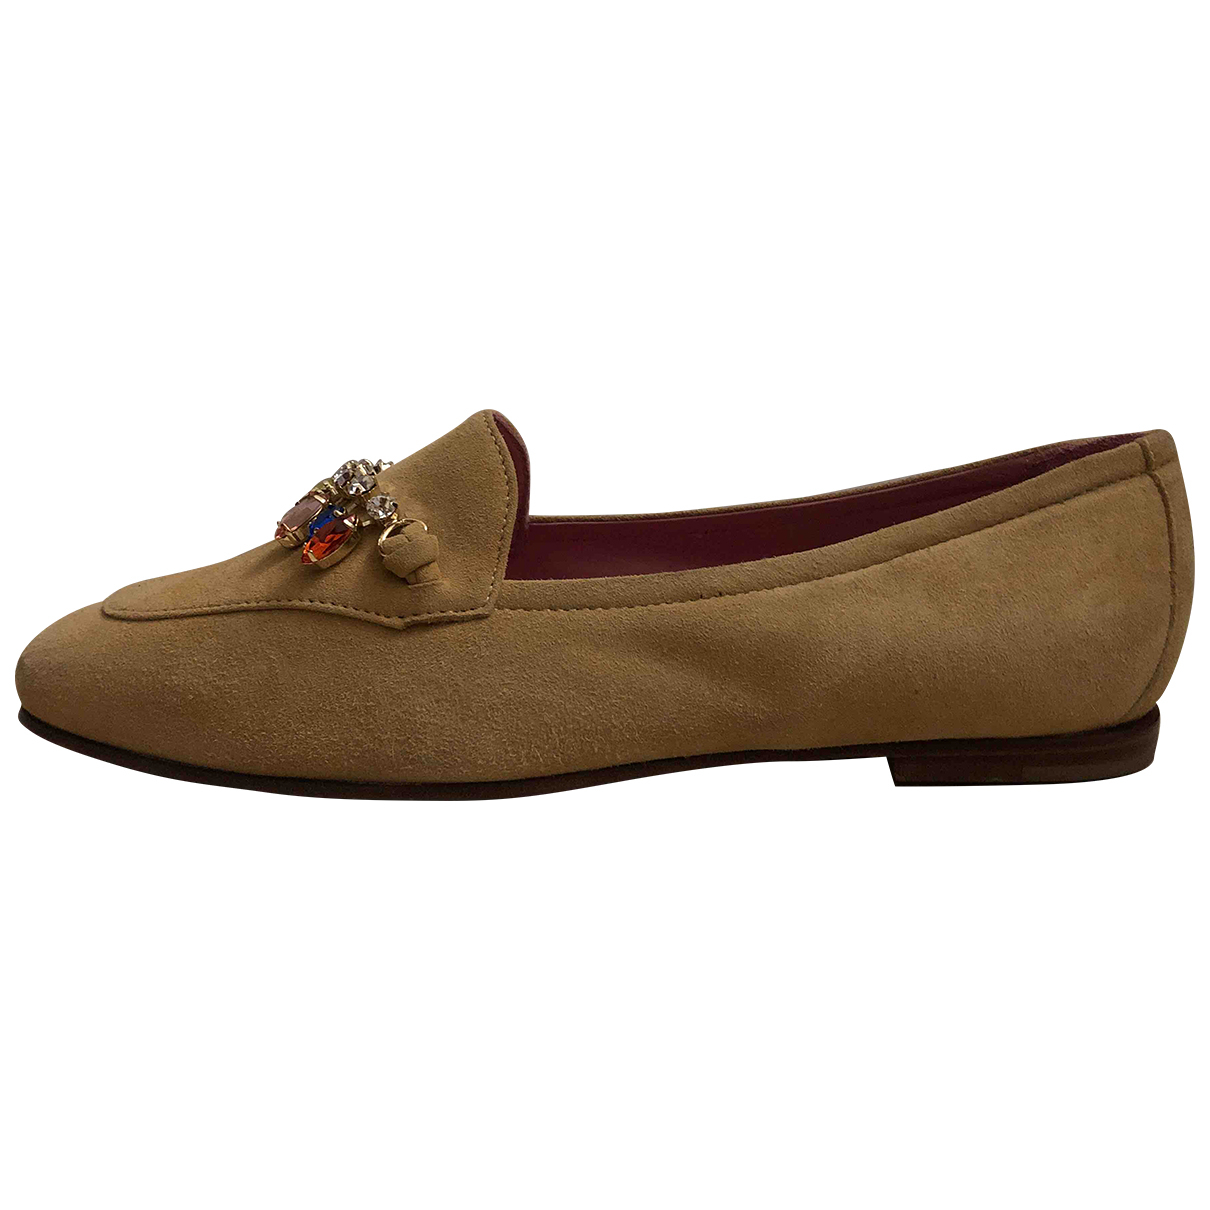 Non Signé / Unsigned N Beige Suede Flats for Women 38.5 EU